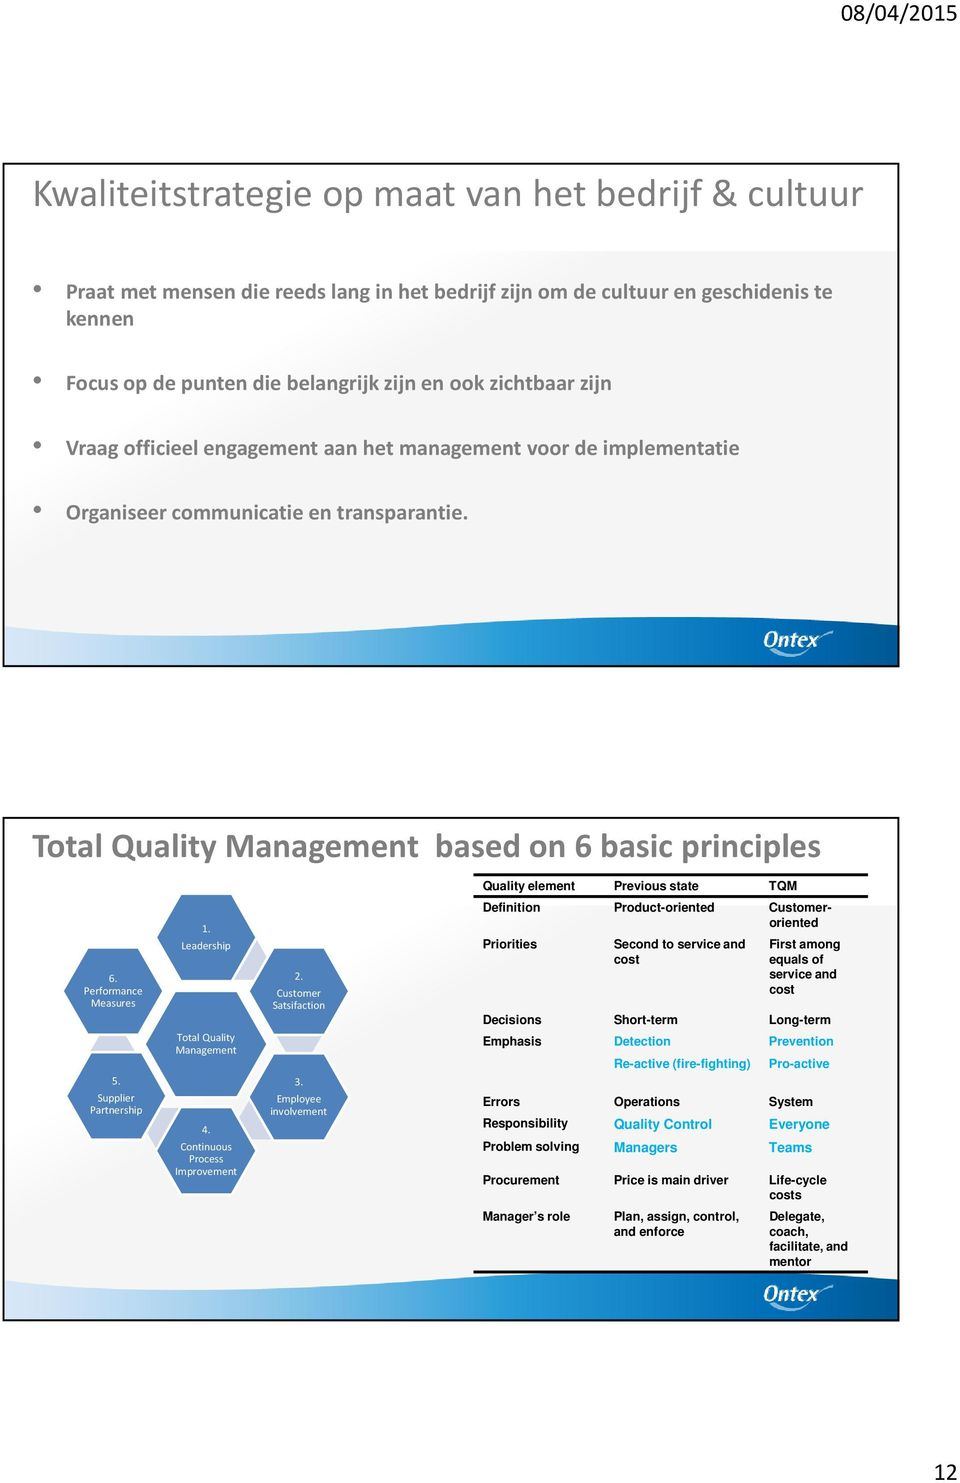 Performance Measures 5. Supplier Partnership 1. Leadership Total Quality Management 4. Continuous Process Improvement 2. Customer Satsifaction 3.